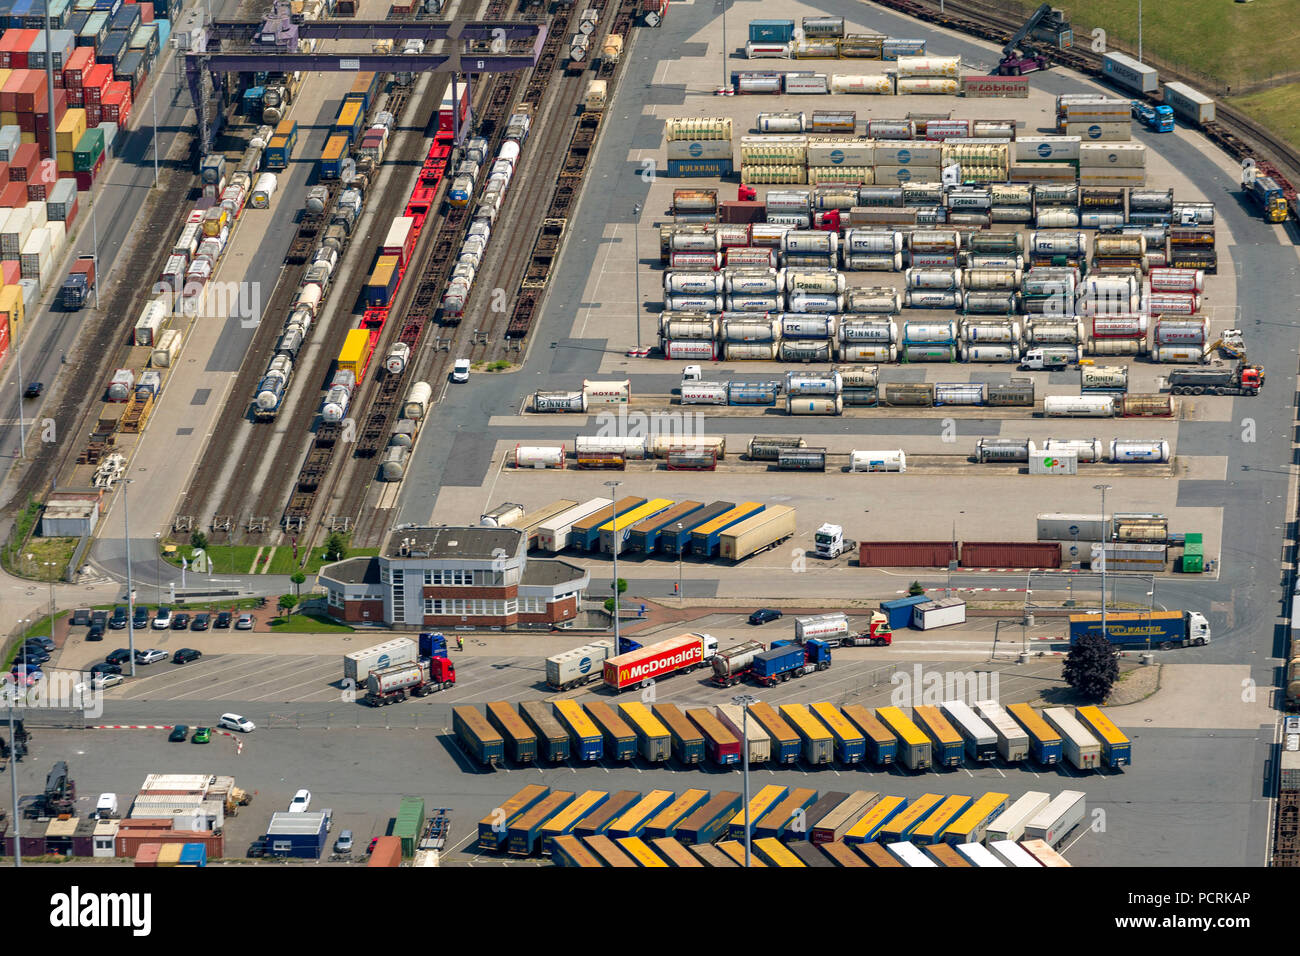 Duisburg Port, inland port, container port, Duisport, aerial view of Duisburg, Duisburg harbour - Stock Image